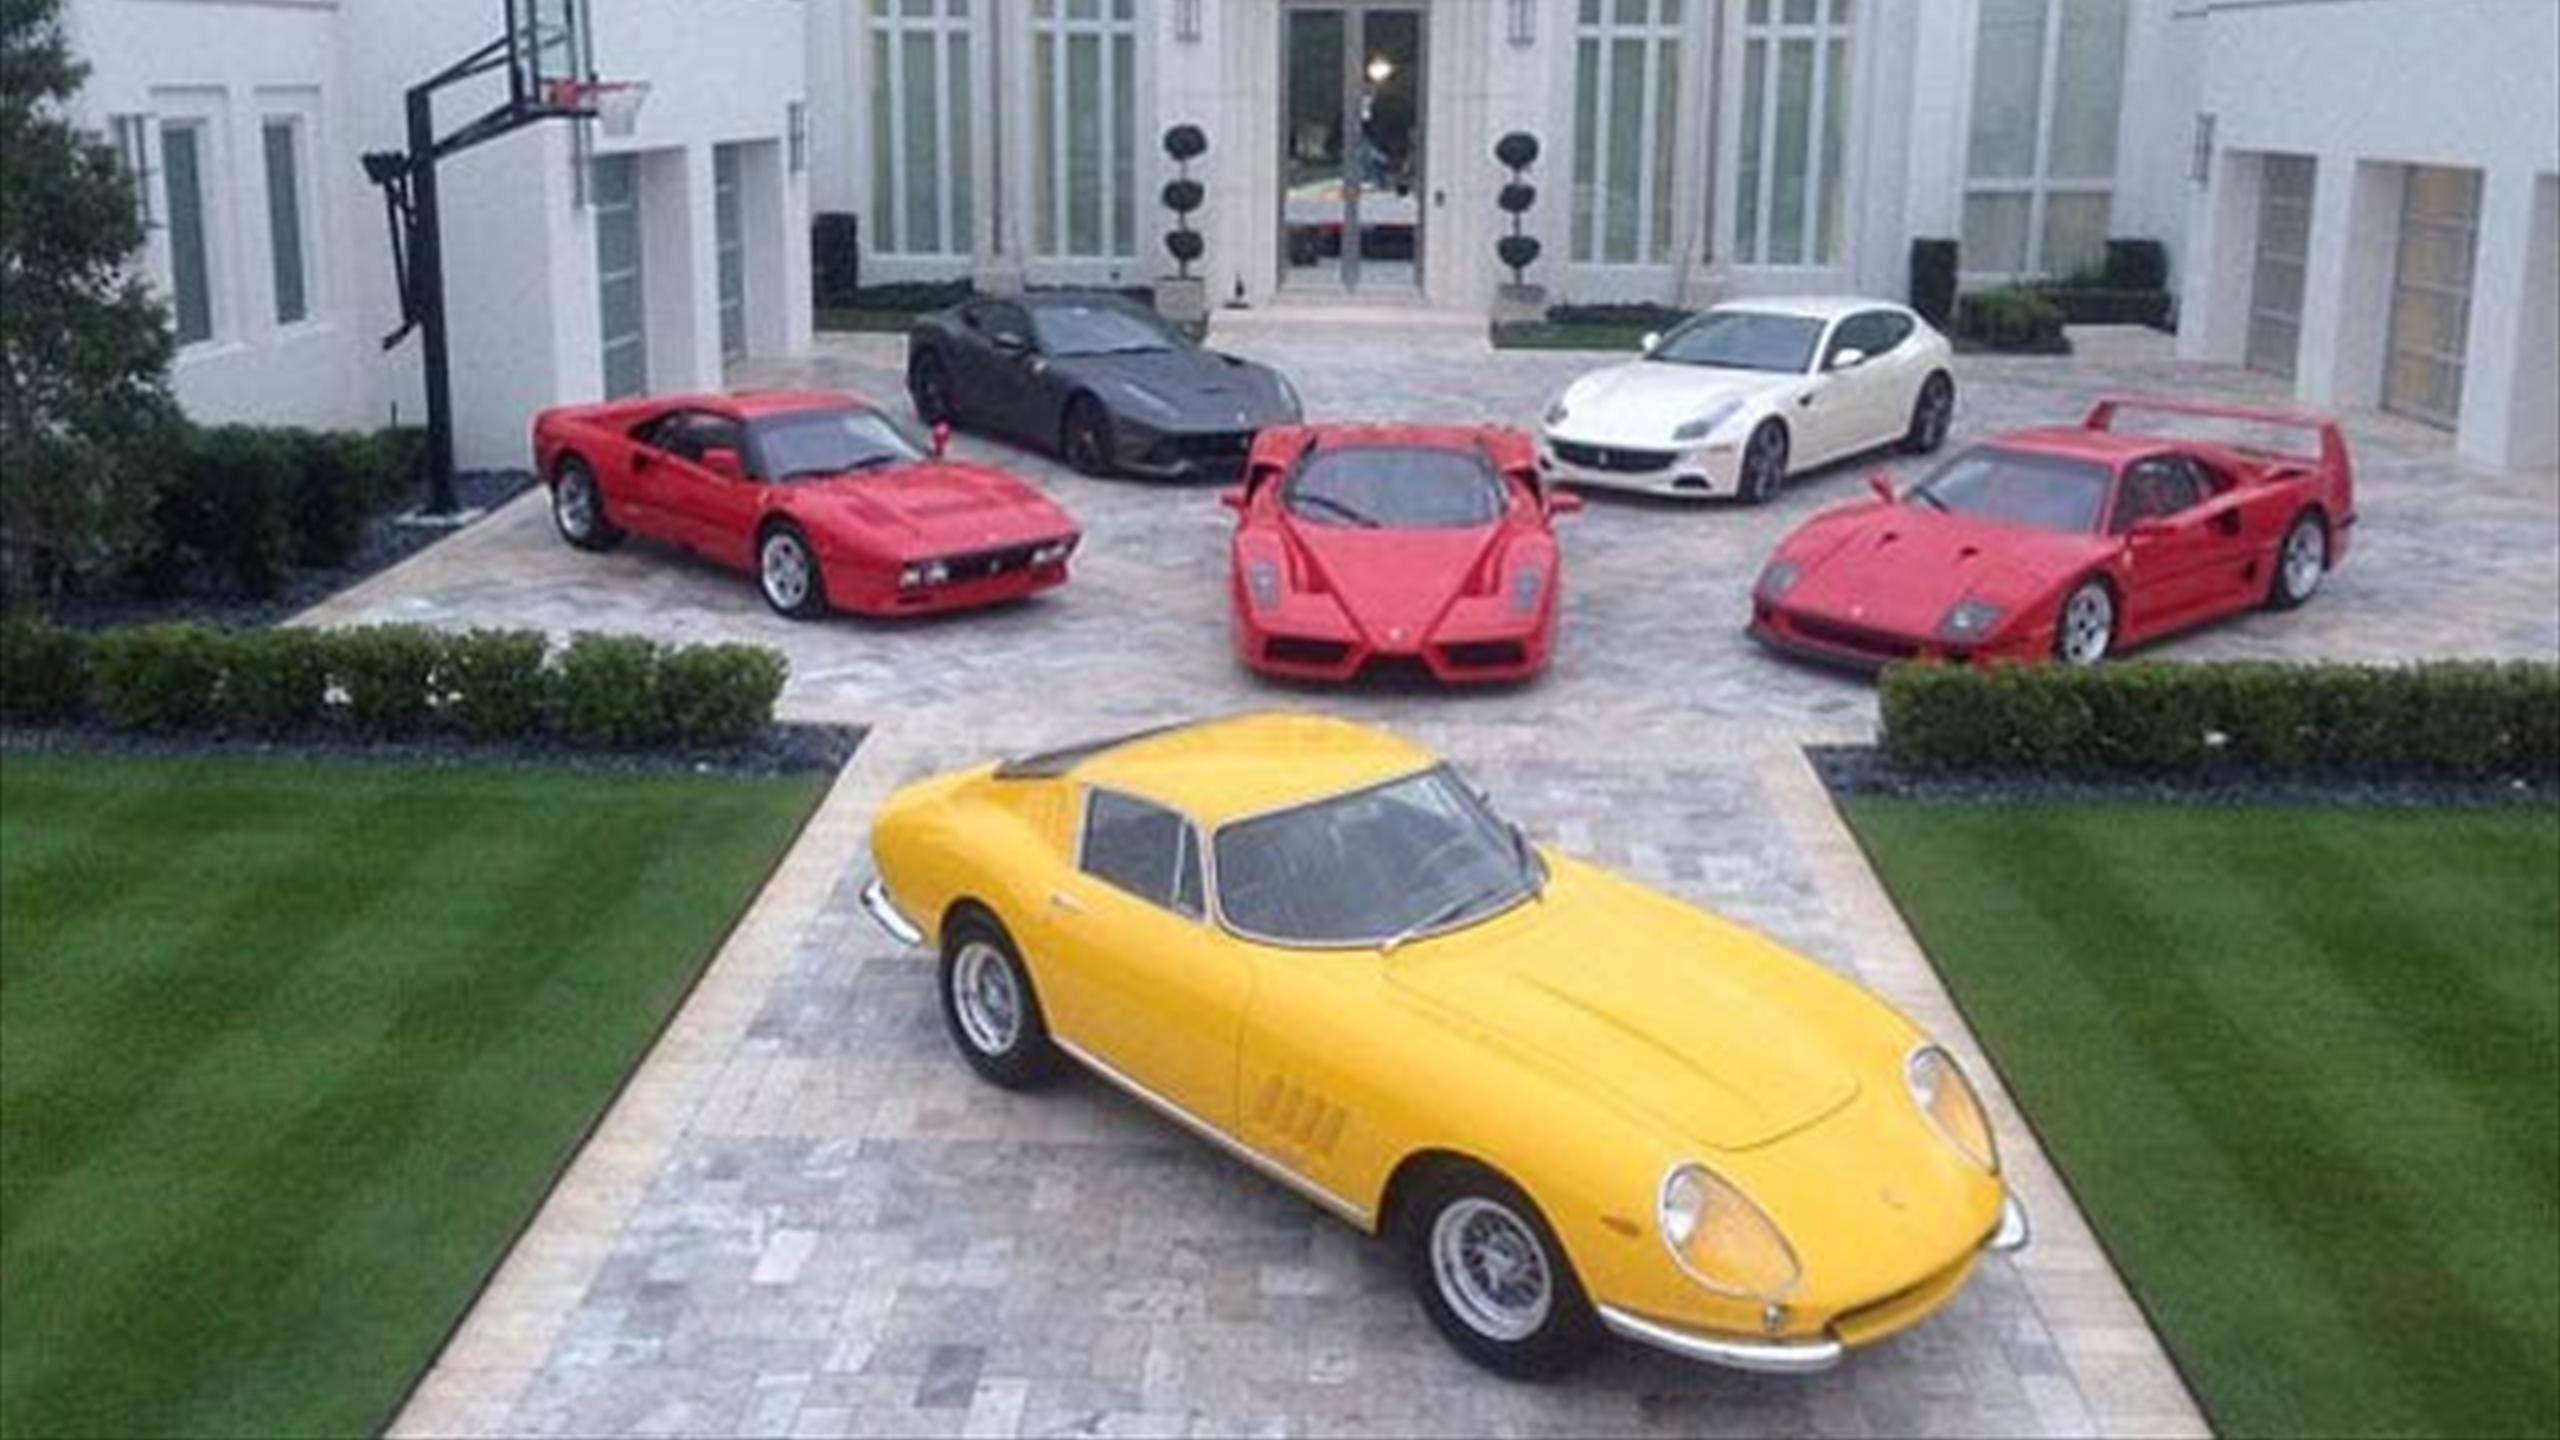 Ian Poulter Shows Off Six Beautiful Ferraris Outside His Florida Mansion  (Instagram)